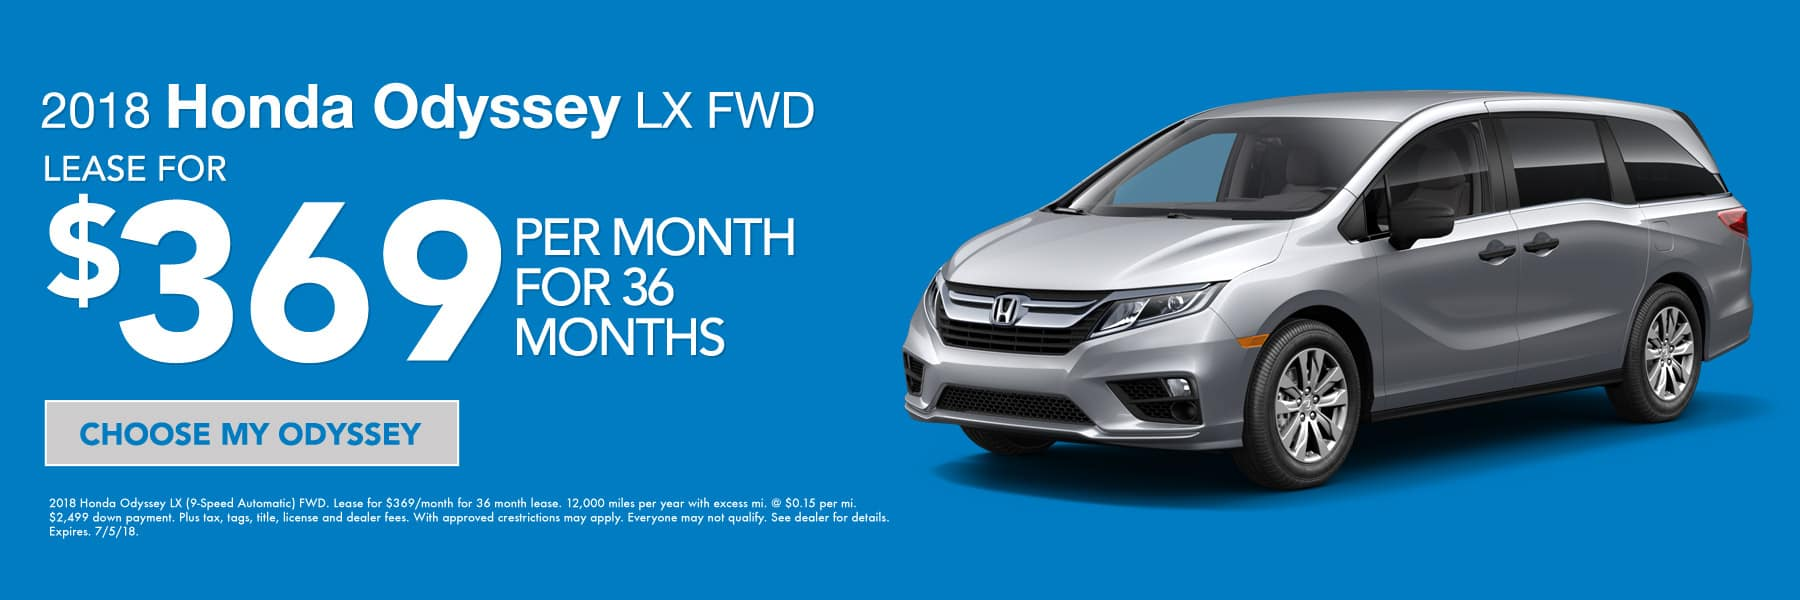 2018 Honda OdysseyLX FWD - Lease for $369/month for 36 months - Choose my Odyssey